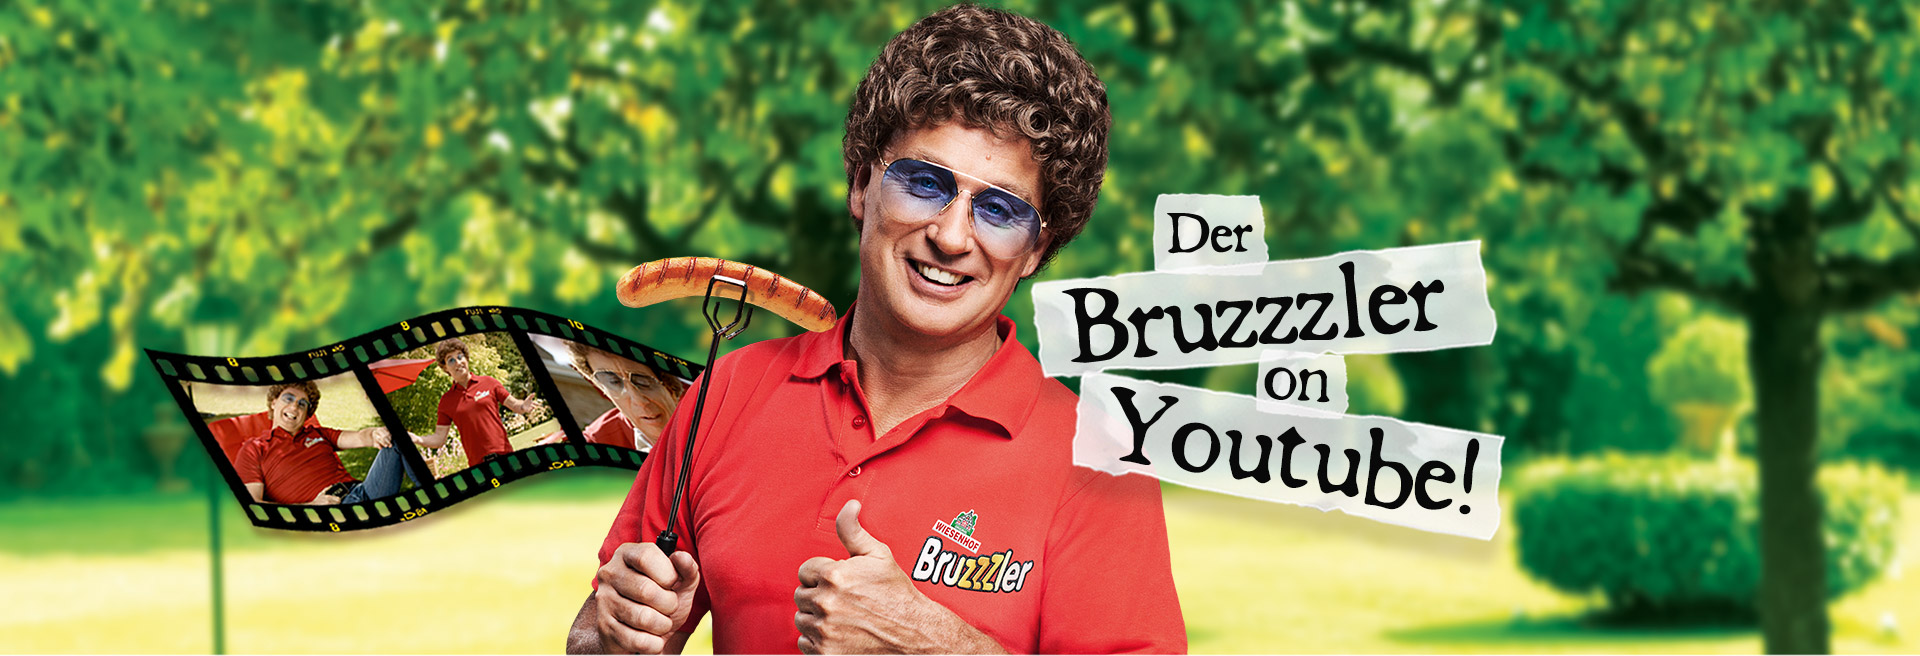 Wiesenhof Bruzzzler Youtube